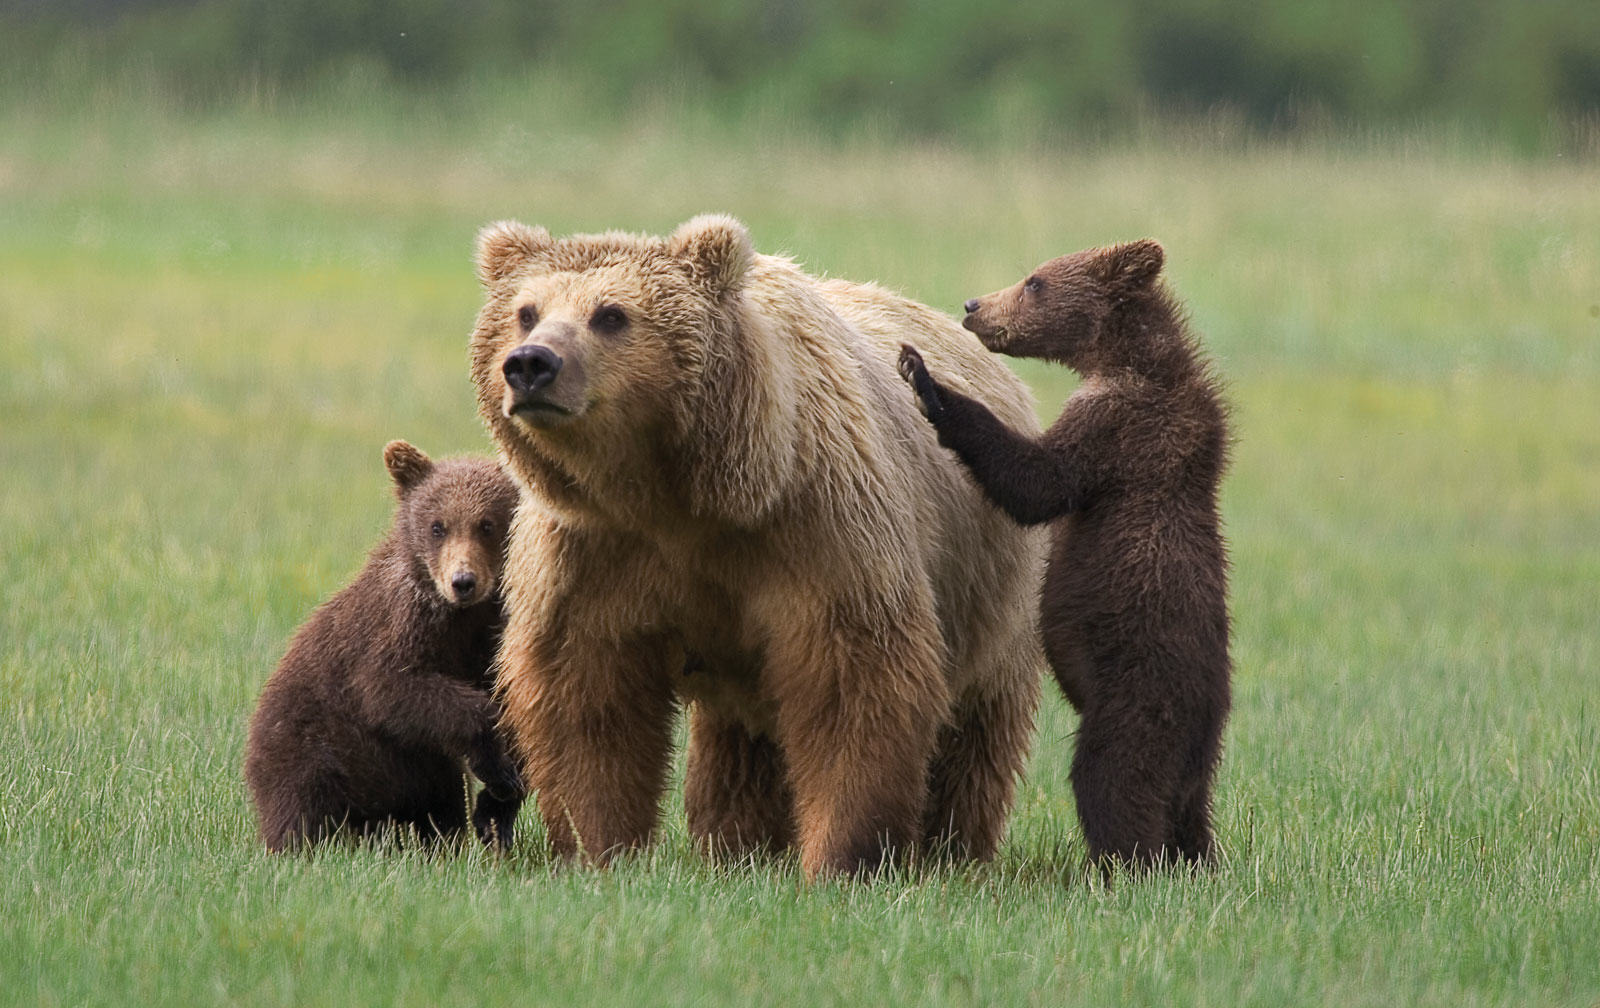 mom grizzly